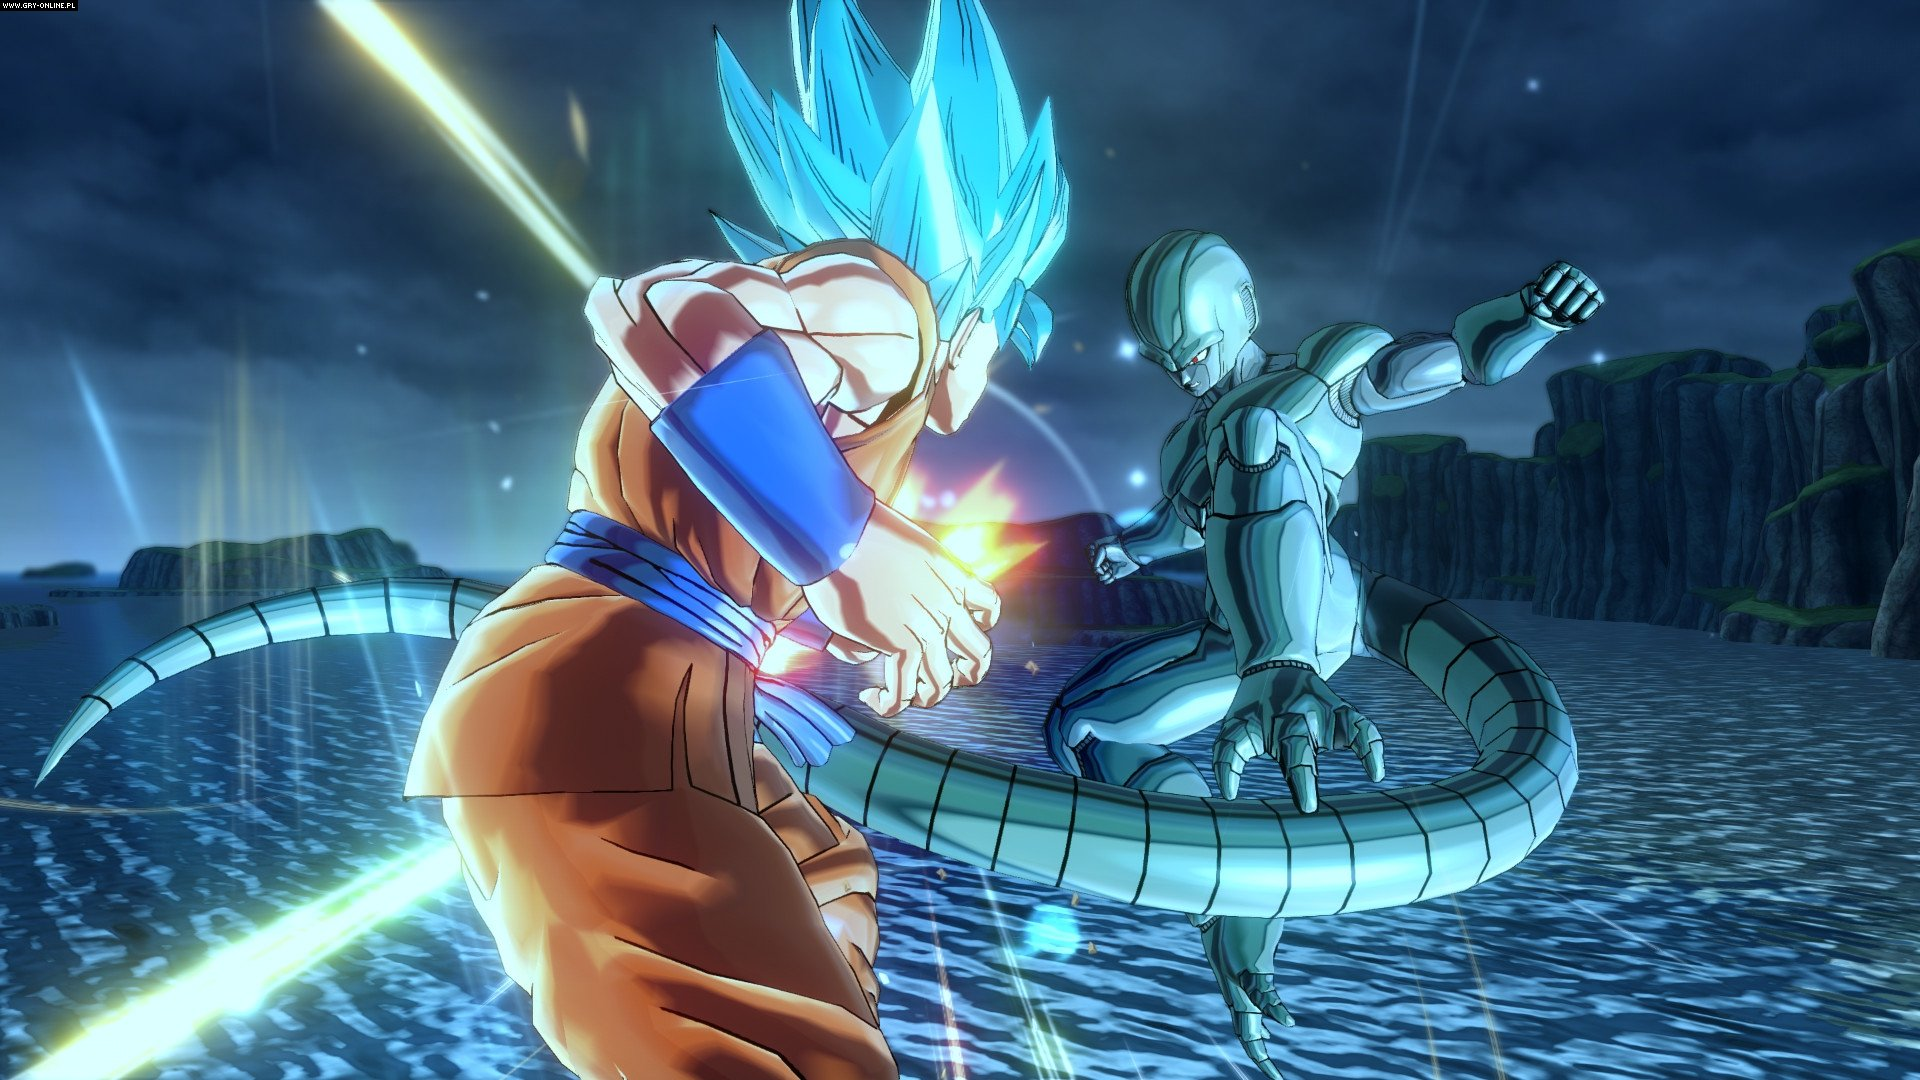 Dragon Ball: Xenoverse 2 PC, PS4, XONE Games Image 13/56, Dimps Corporation, Bandai Namco Entertainment